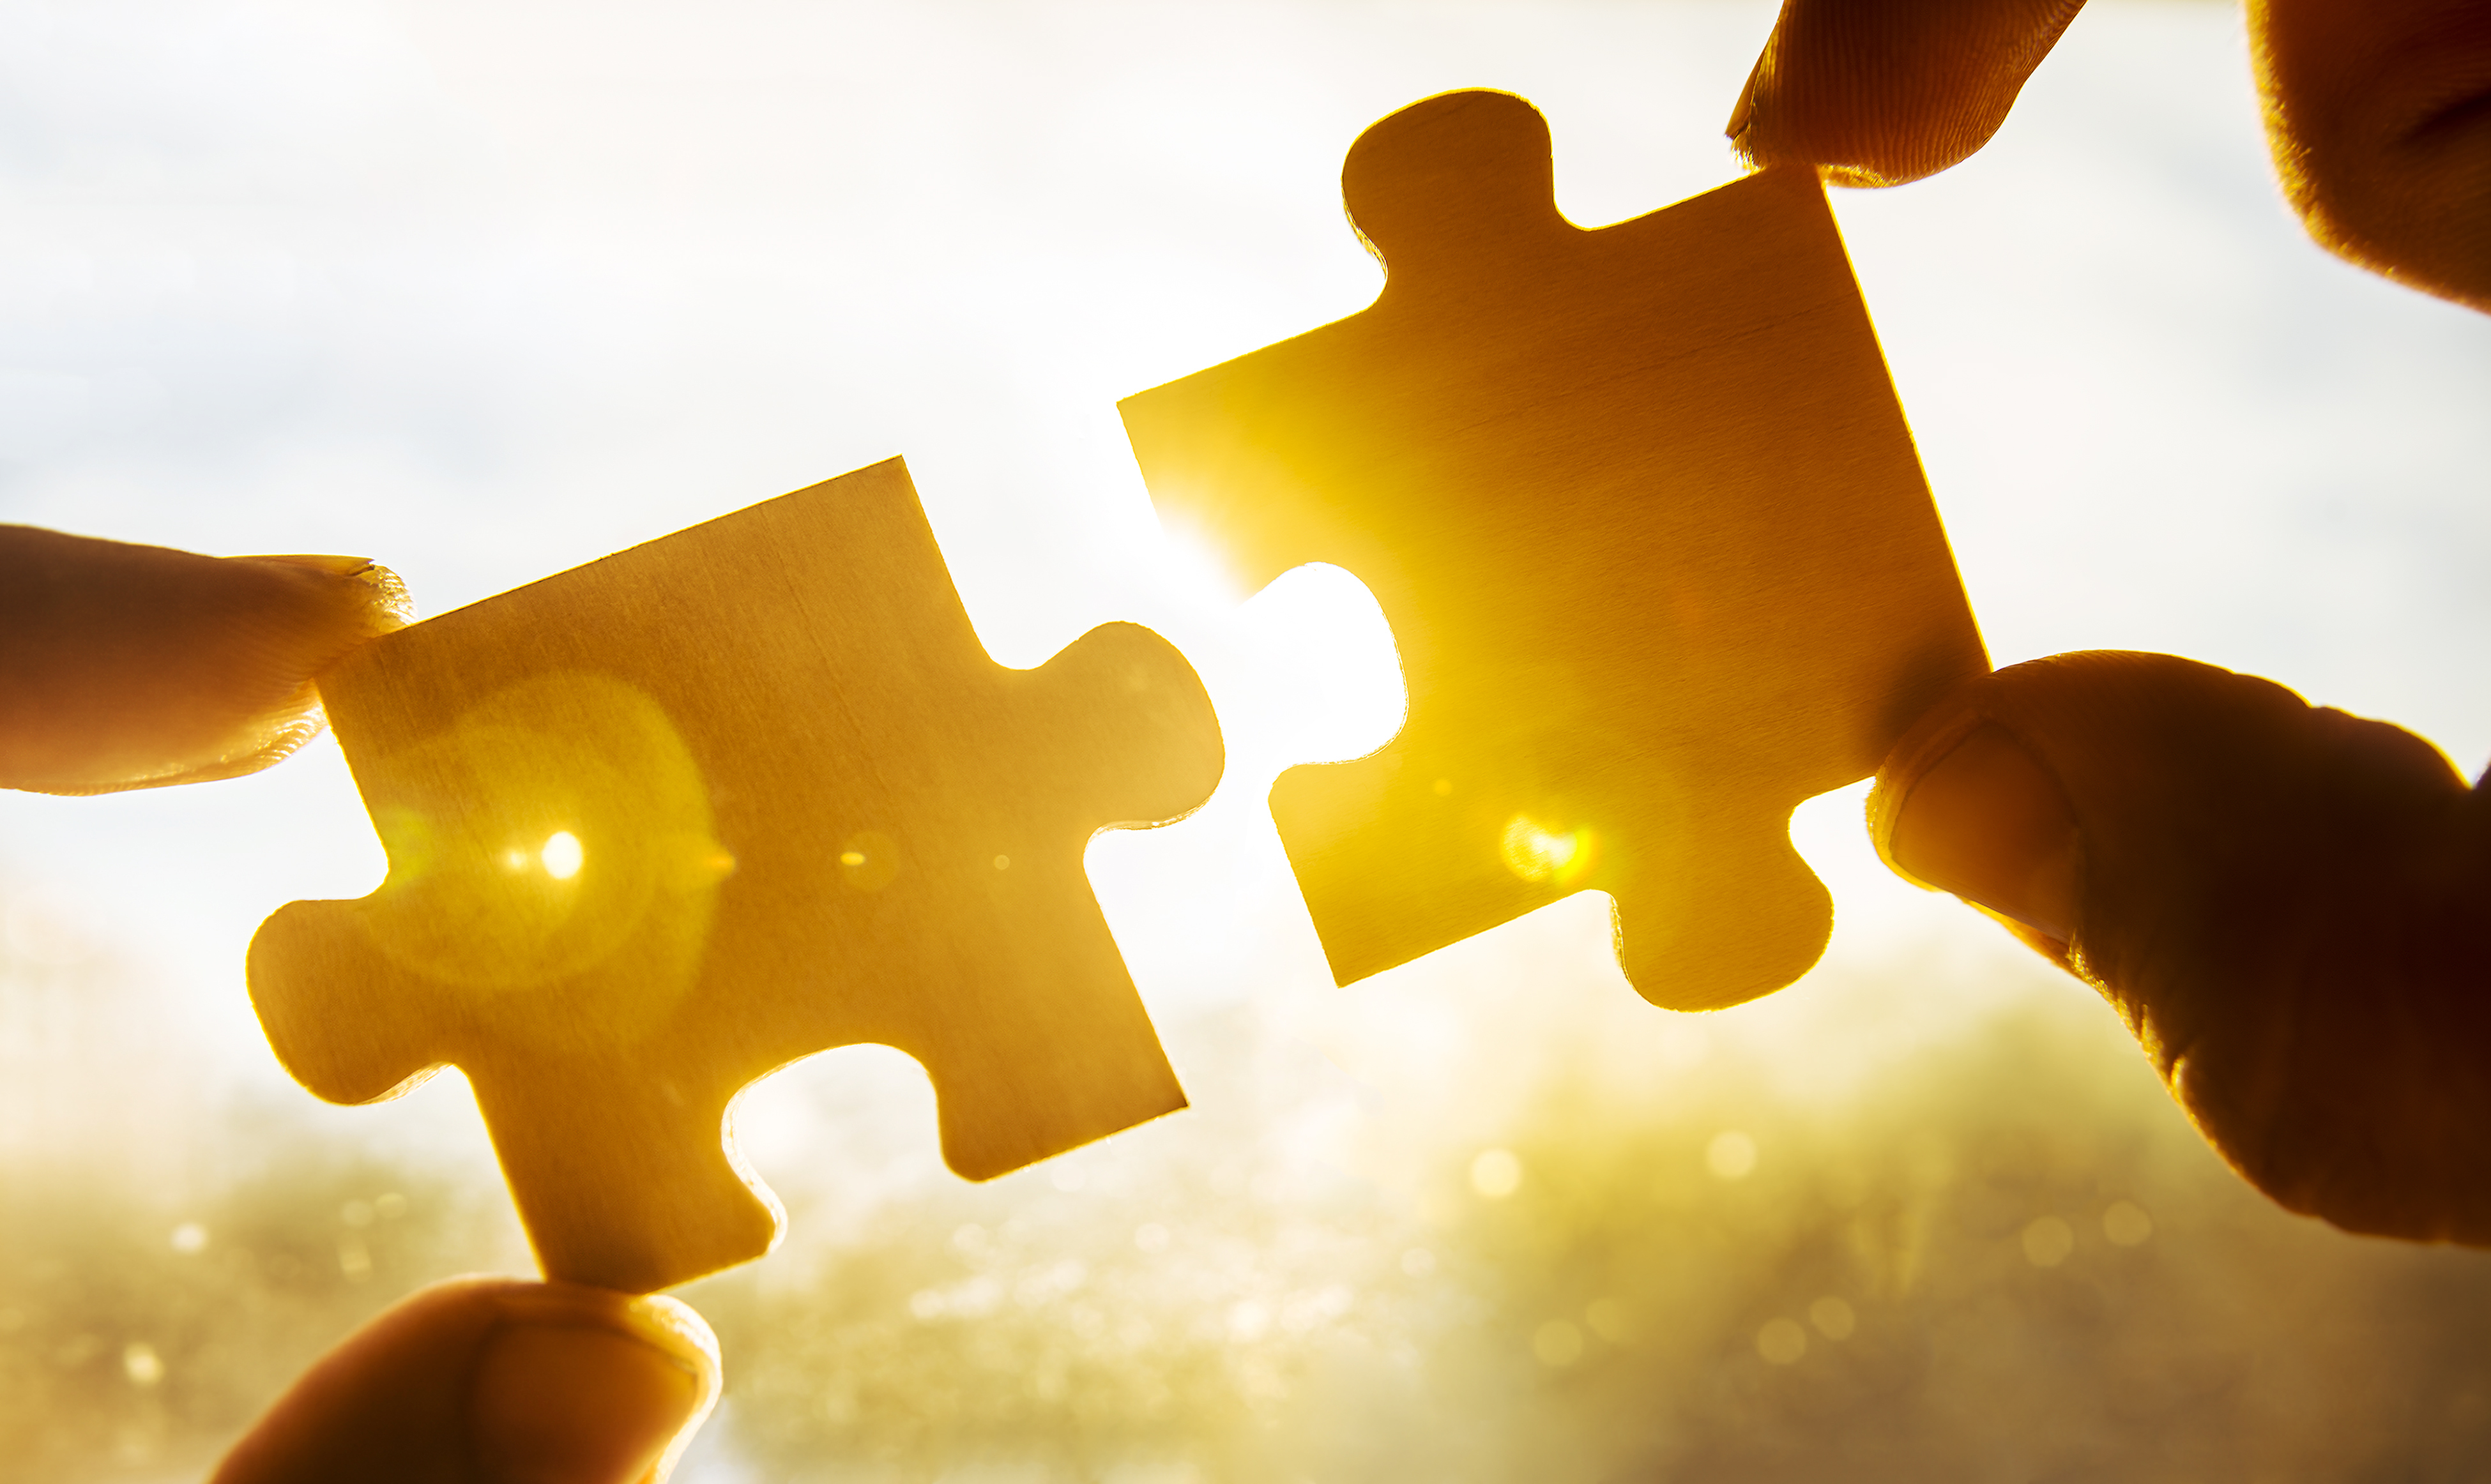 Hands holding 2 puzzle pieces that fit together, with sun shining around and between the puzzle pieces